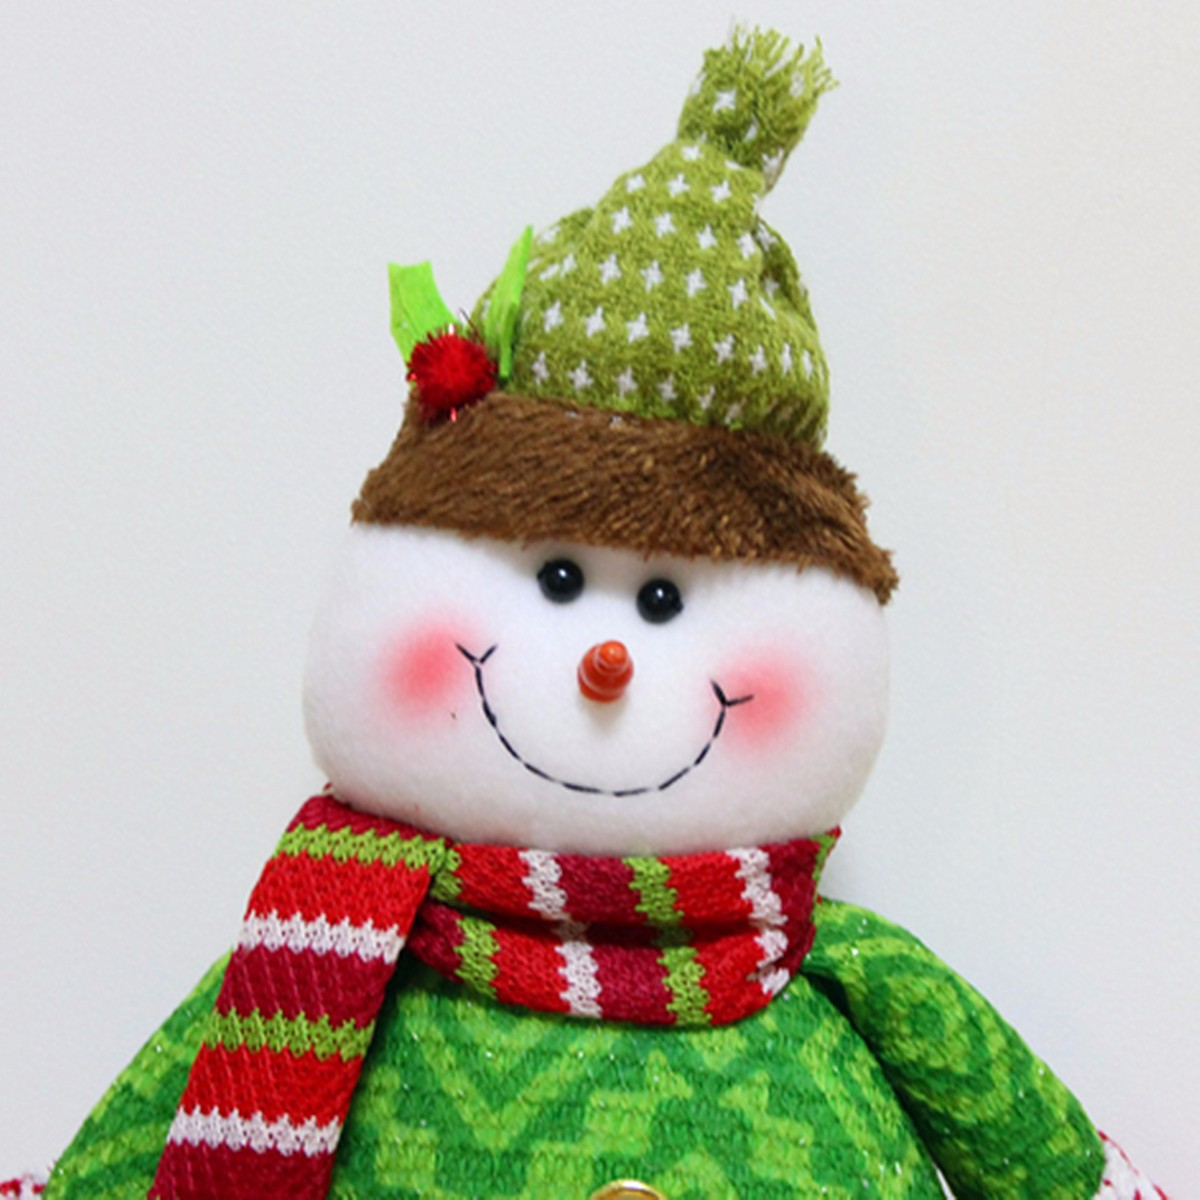 Cute Christmas Idol Toy Santa Claus Snowman Deer Ornaments Gift Xmas Home Decor - Photo: 6